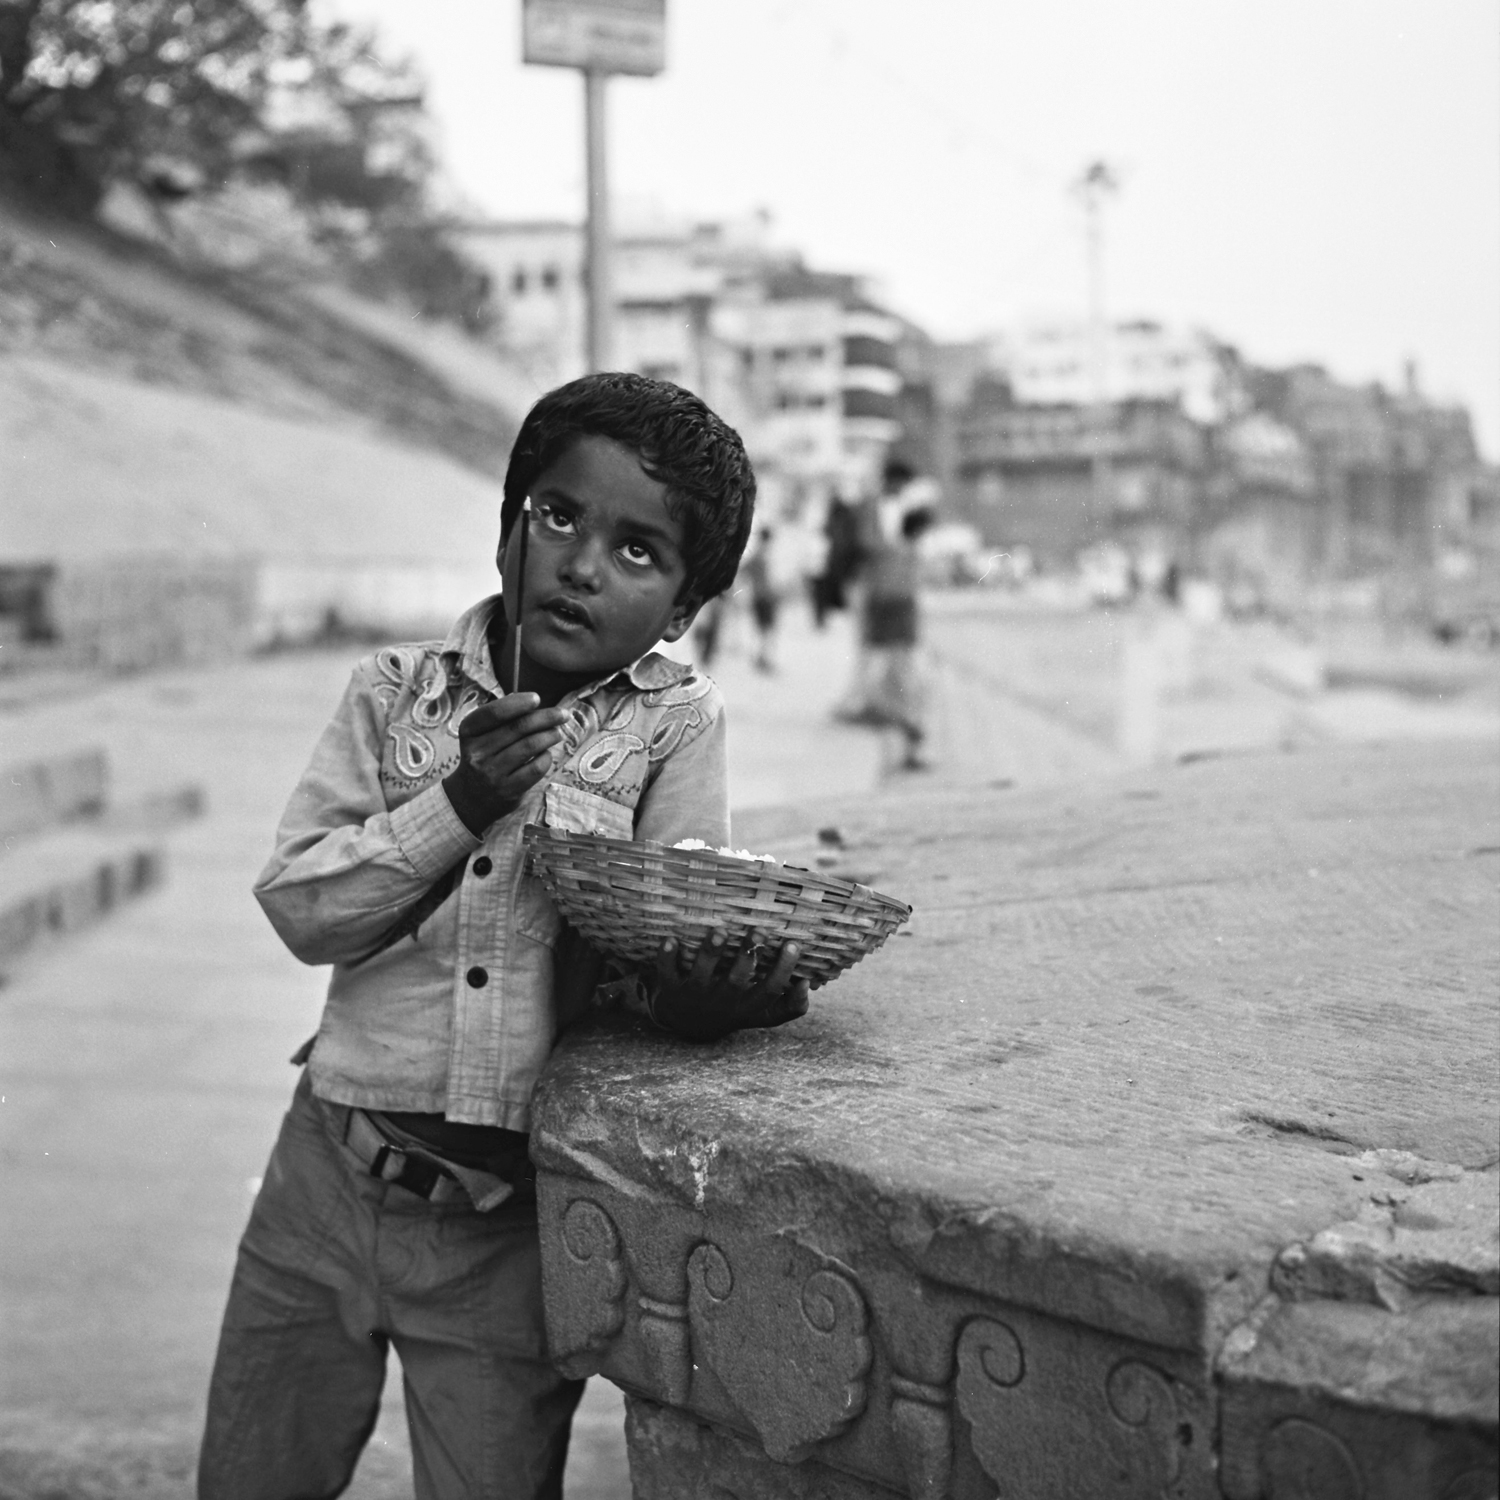 incense-boy-varanasi.jpg